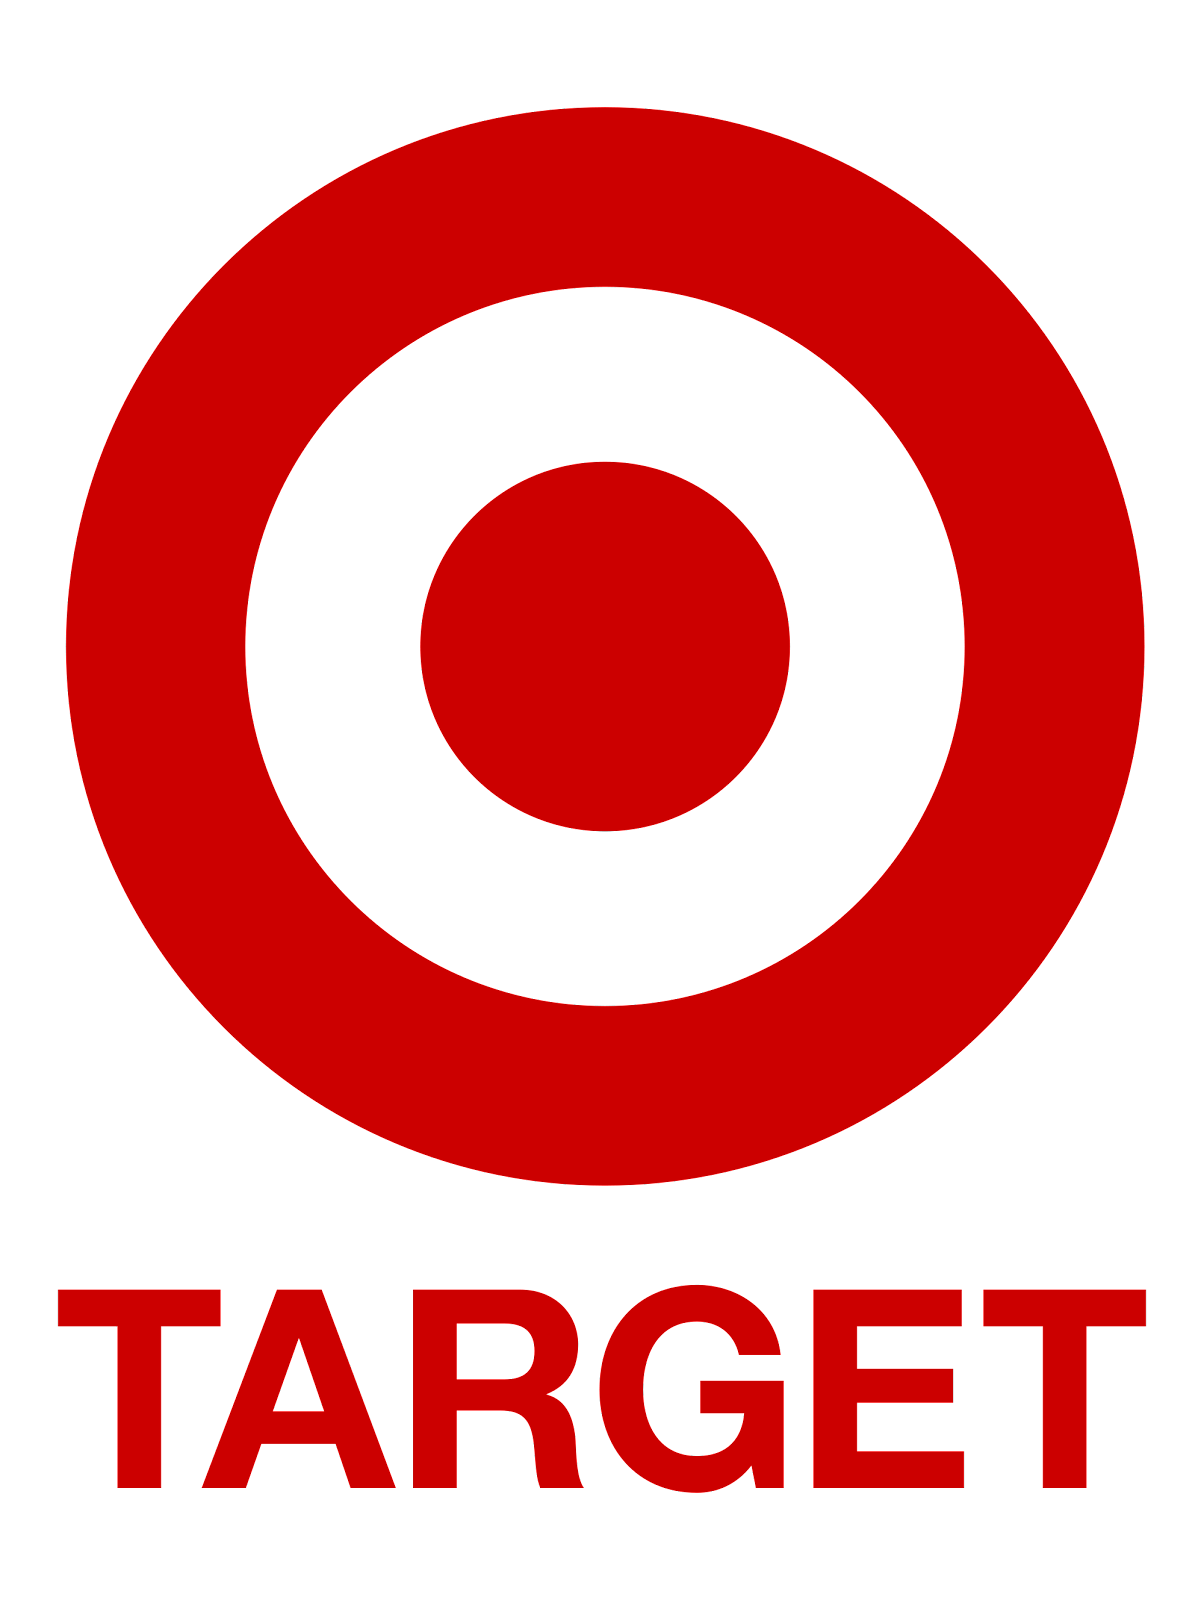 https://upload.wikimedia.org/wikipedia/commons/thumb/9/9a/Target_logo.svg/2000px-Target_logo.svg.png